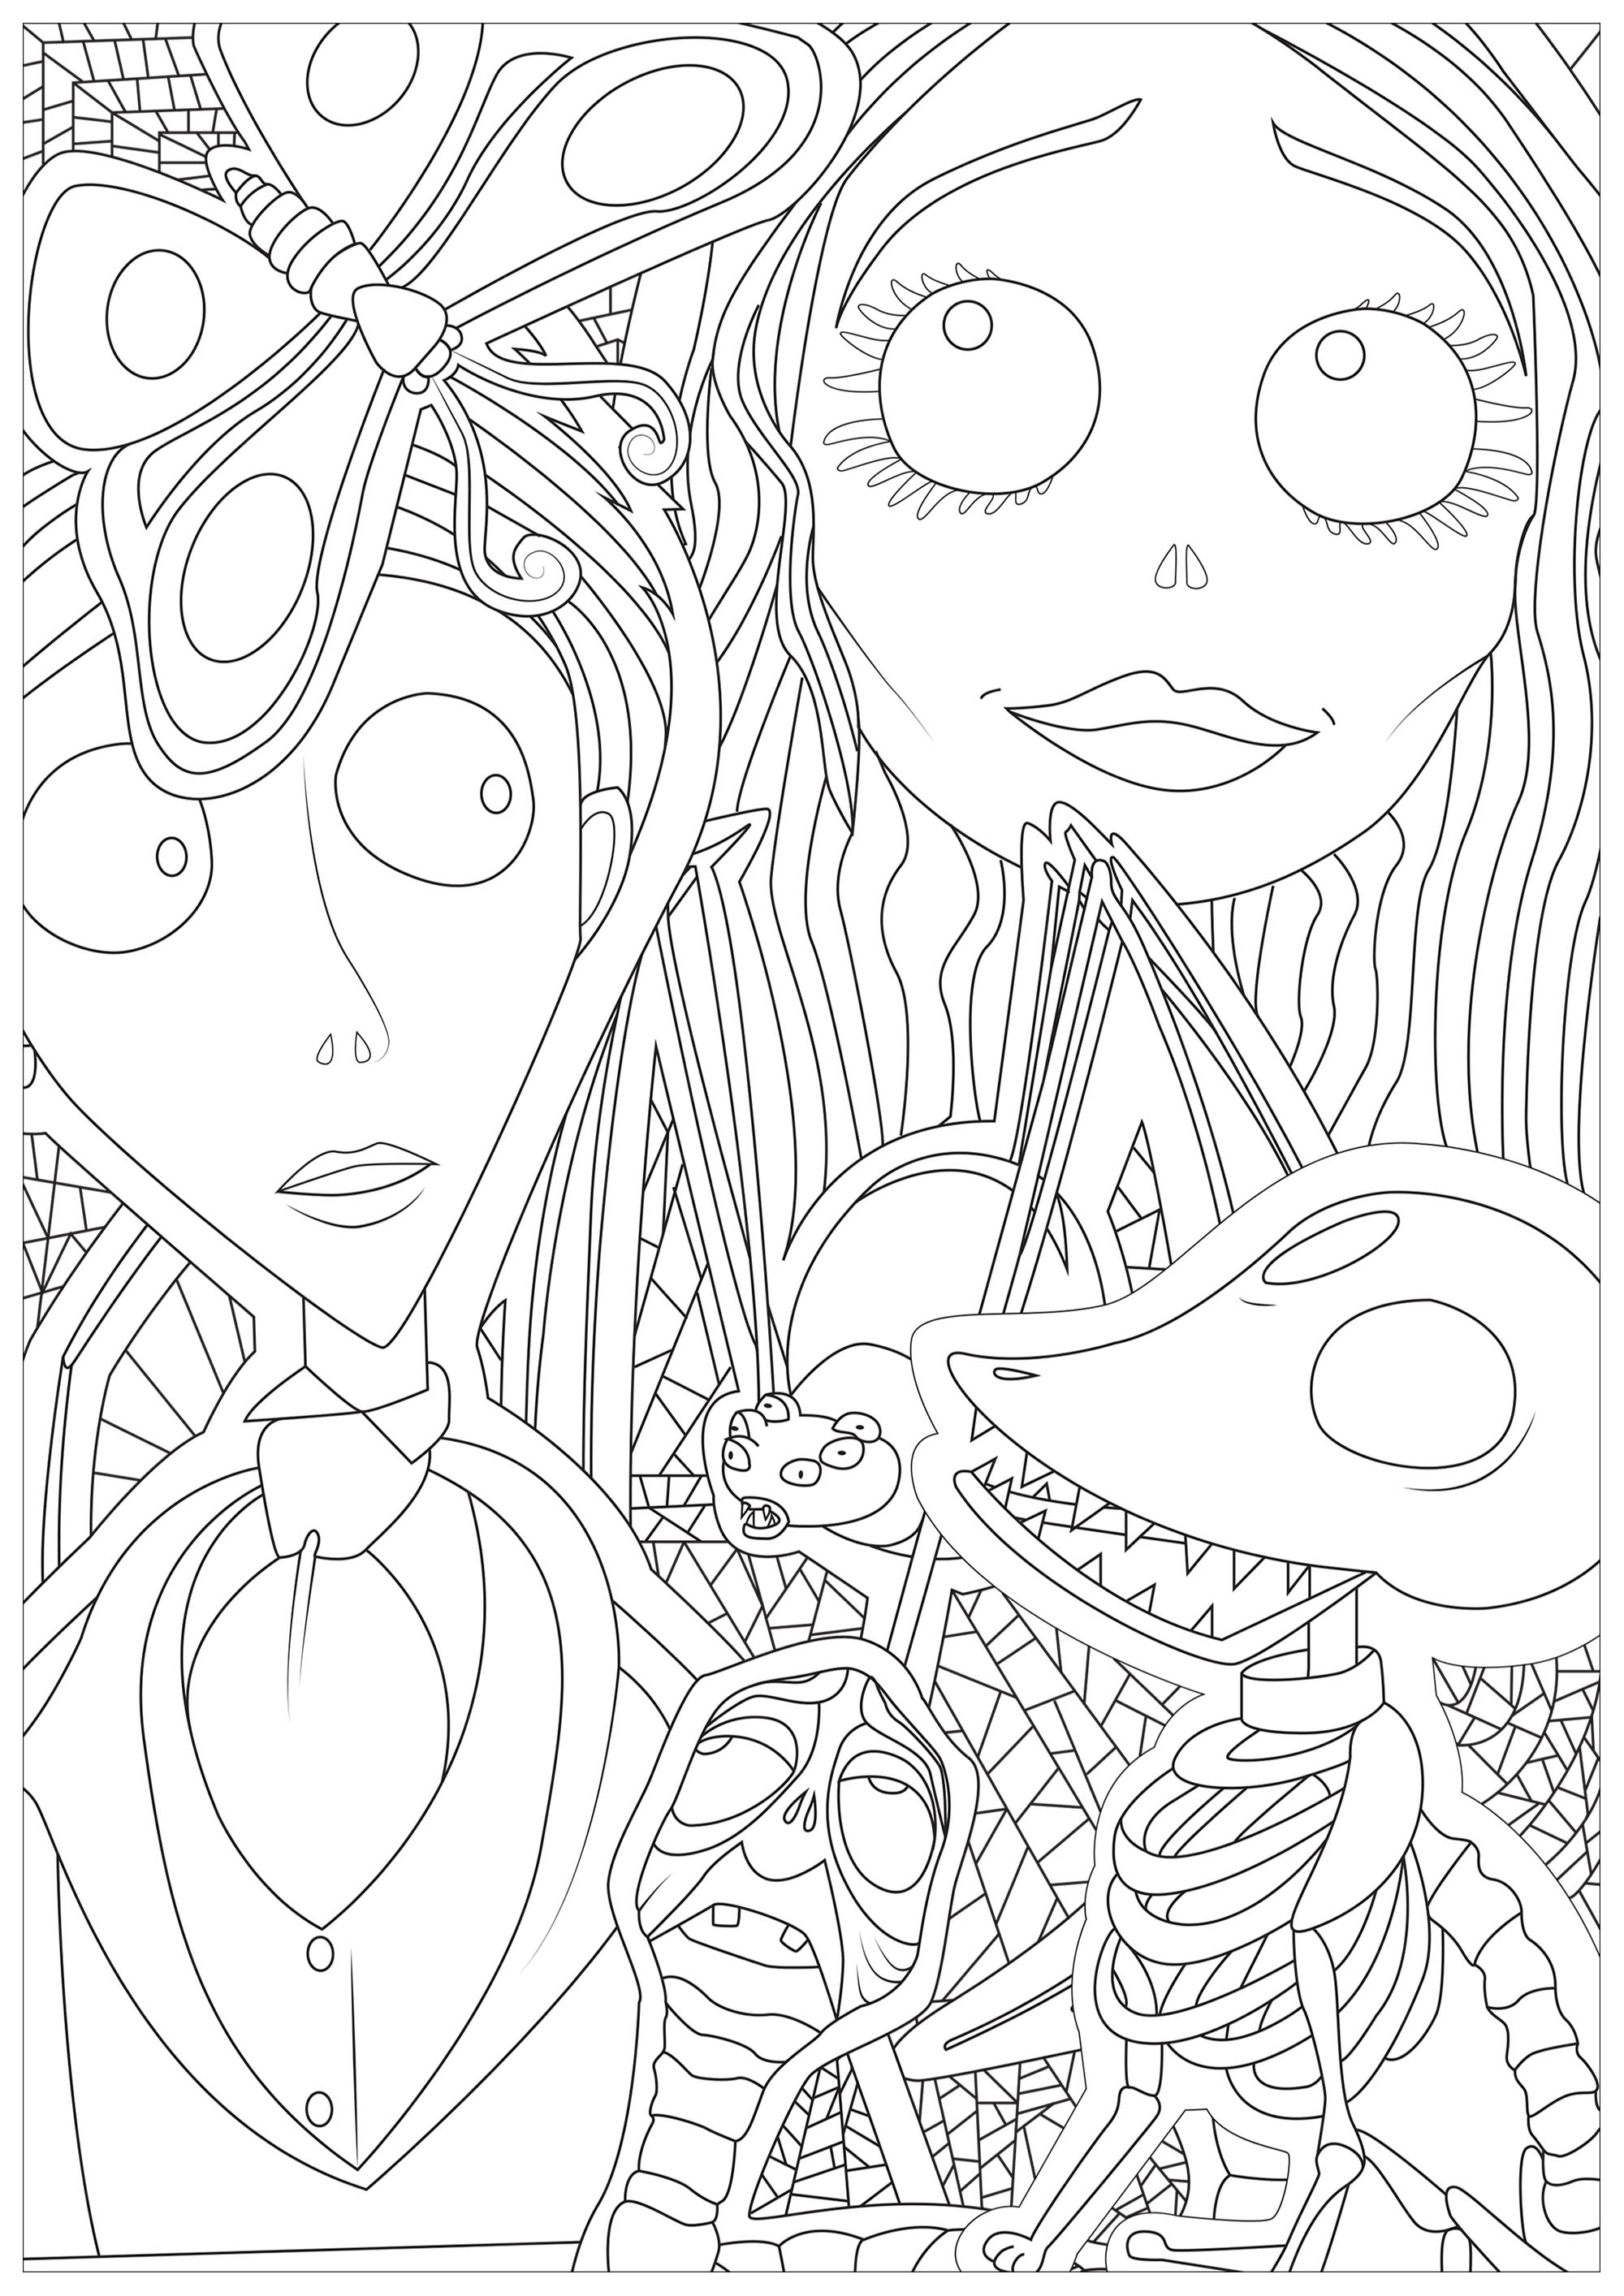 corpse bride coloring pages Corpse bride   Halloween Adult Coloring Pages corpse bride coloring pages